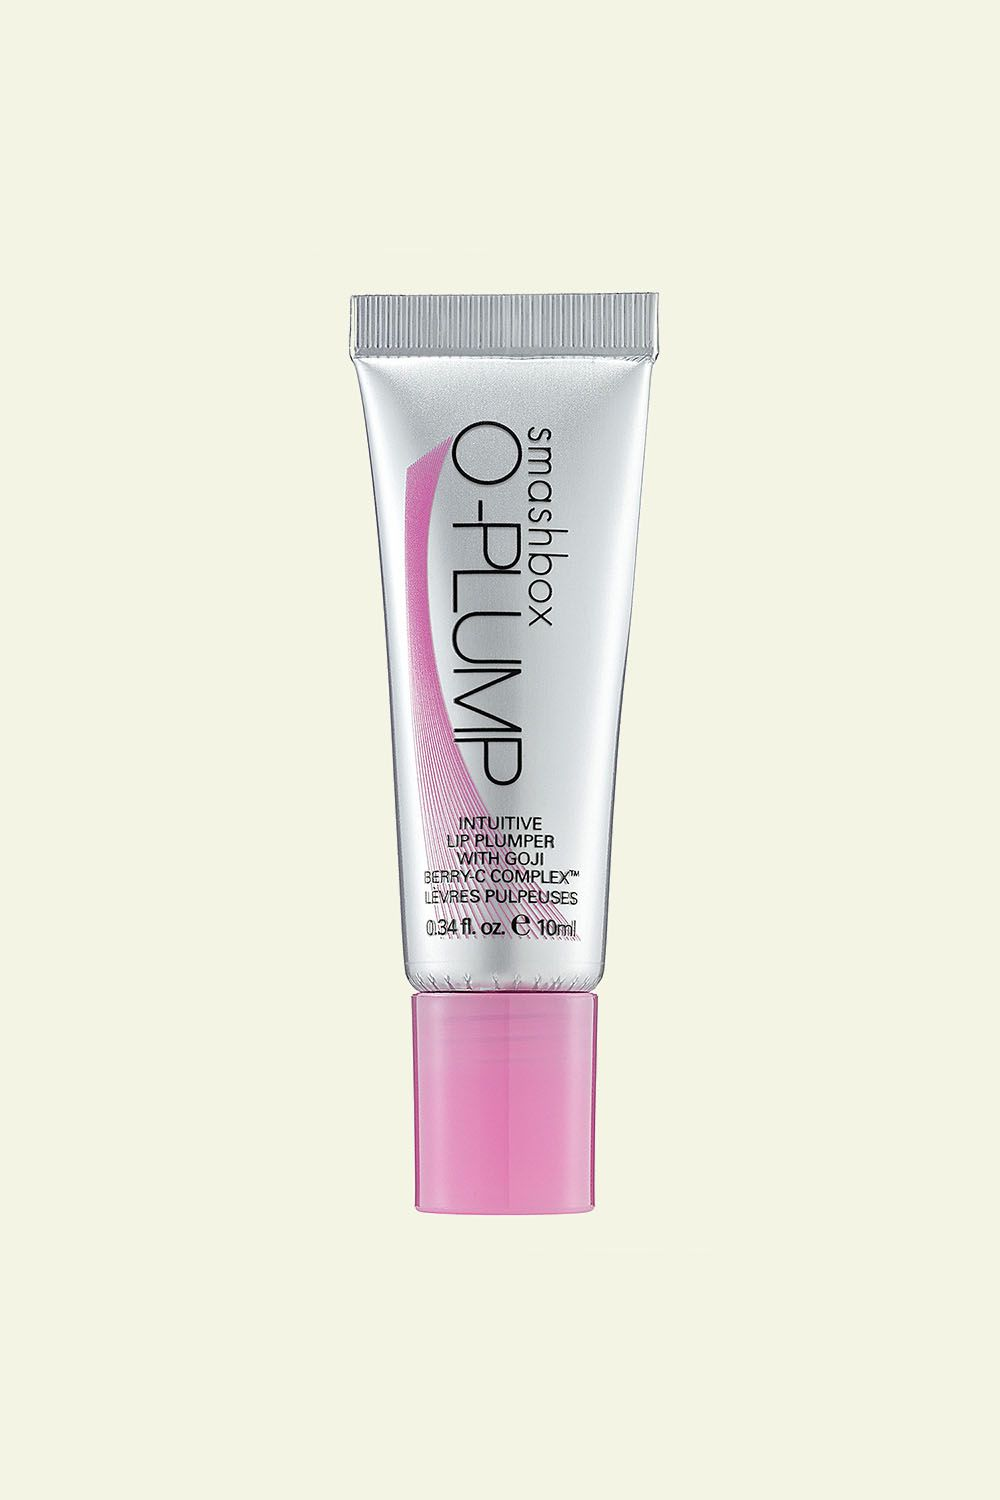 """<p>This plumping treatment resets lips with marine botanicals and avocado oil while reacting to your natural pH to create acustom shade of pink.<span class=""""redactor-invisible-space"""" data-verified=""""redactor"""" data-redactor-tag=""""span"""" data-redactor-class=""""redactor-invisible-space""""></span></p><p><span class=""""redactor-invisible-space"""" data-verified=""""redactor"""" data-redactor-tag=""""span"""" data-redactor-class=""""redactor-invisible-space""""><br> Smashbox O-PLUMP Intuitive Lip Plumper With Goji Berry-C Complex, <a href=""""http://bit.ly/2kXjfwi"""" target=""""_blank"""" data-tracking-id=""""recirc-text-link"""">$26; sephora.com</a>.<span class=""""redactor-invisible-space"""" data-verified=""""redactor"""" data-redactor-tag=""""span"""" data-redactor-class=""""redactor-invisible-space""""></span><br></span></p>"""